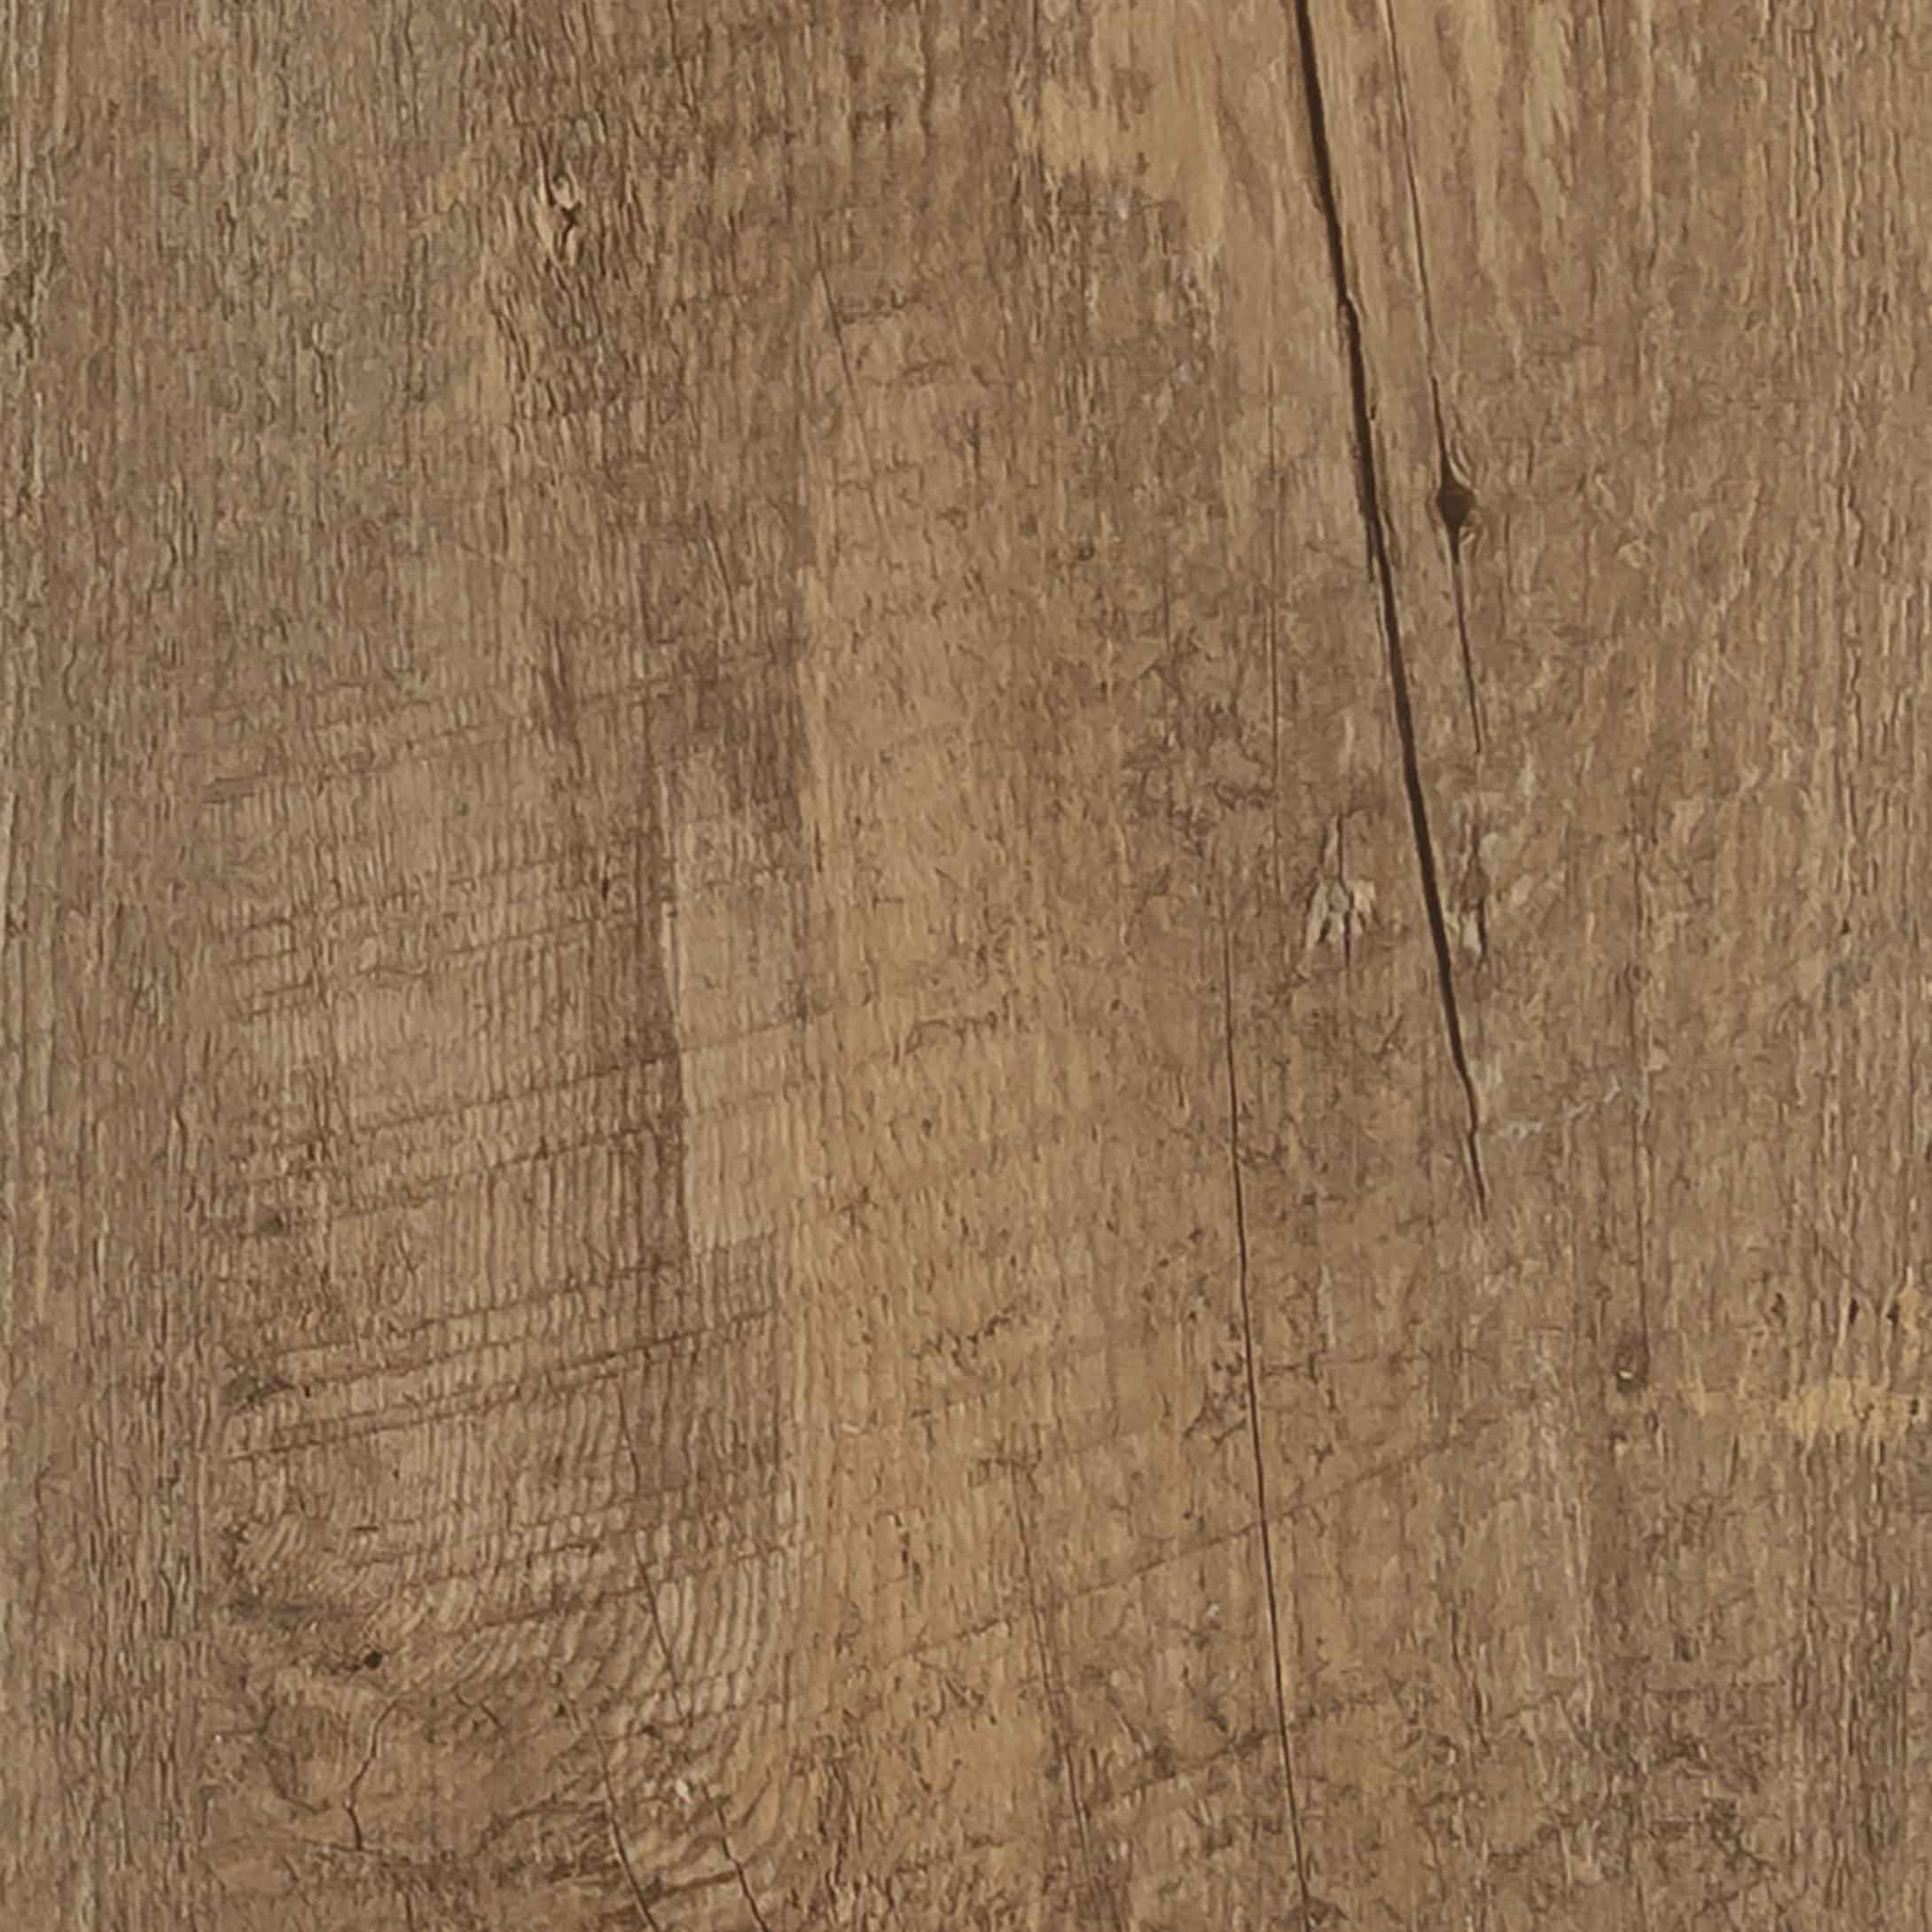 Rustic Oak, brown 2877